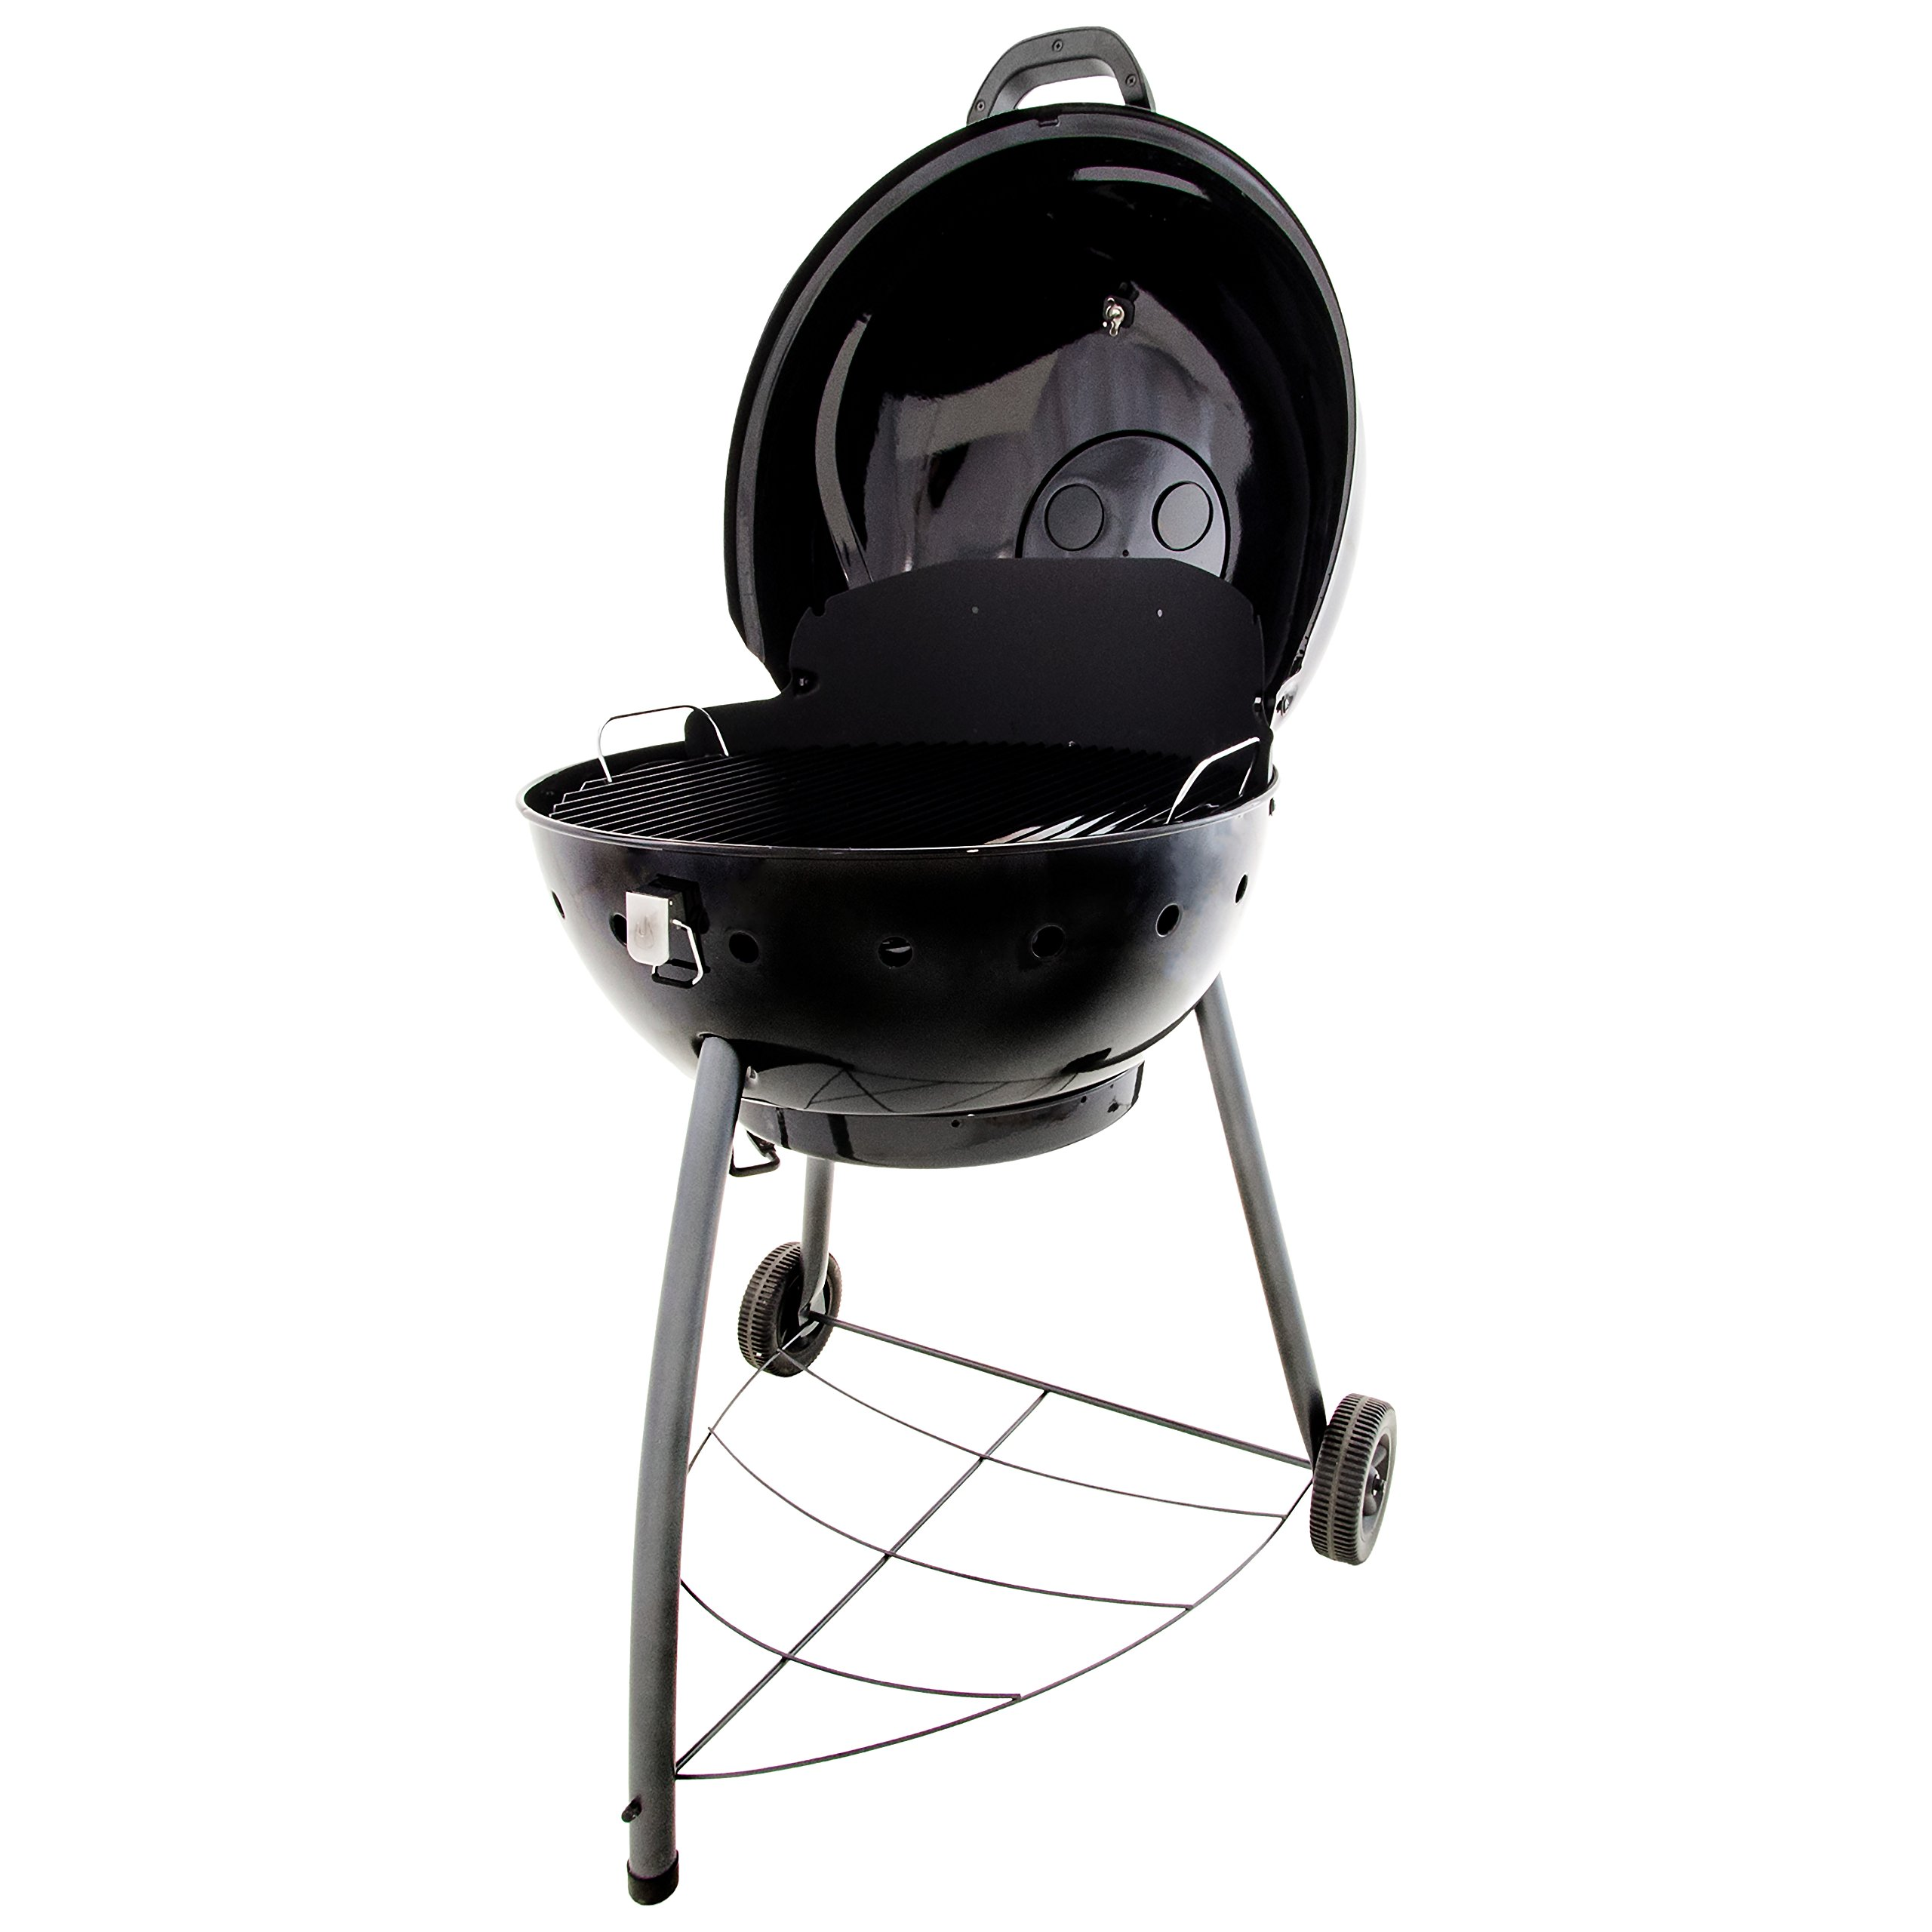 Char-Broil TRU-Infrared Kettleman Charcoal Grill, 22.5 Inch by Char-Broil (Image #2)